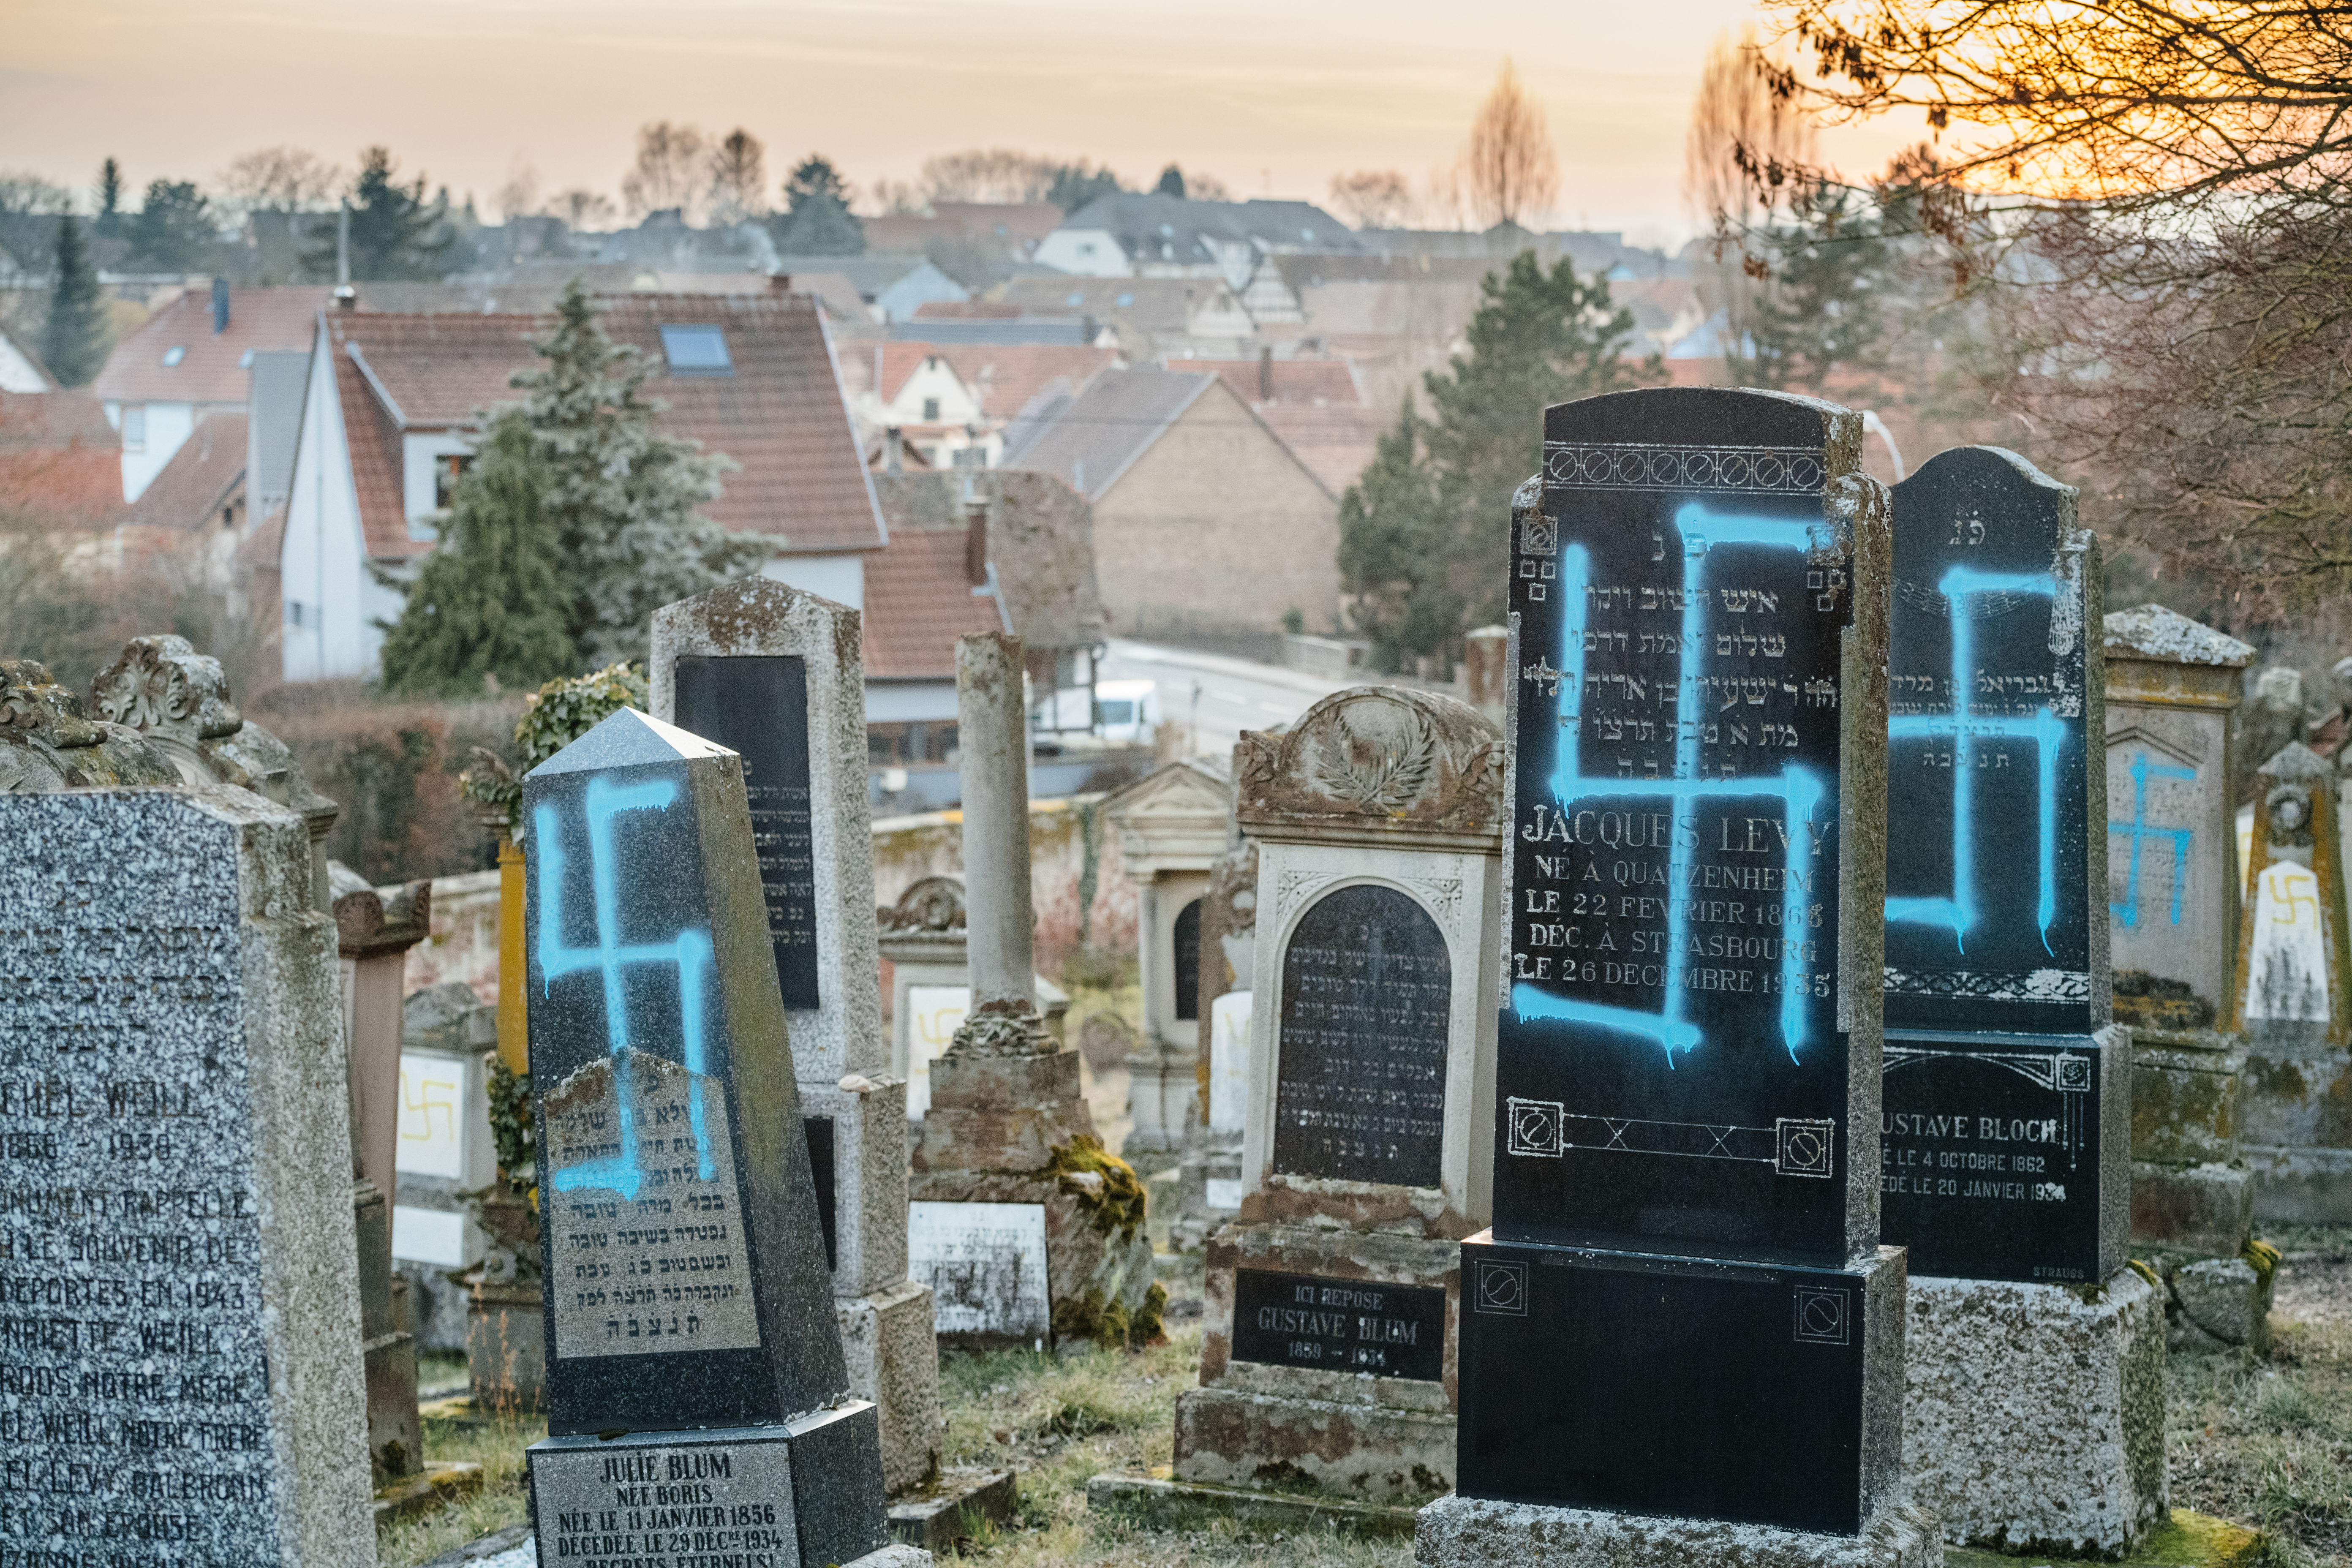 Photo of headstones vandalised with spray paint